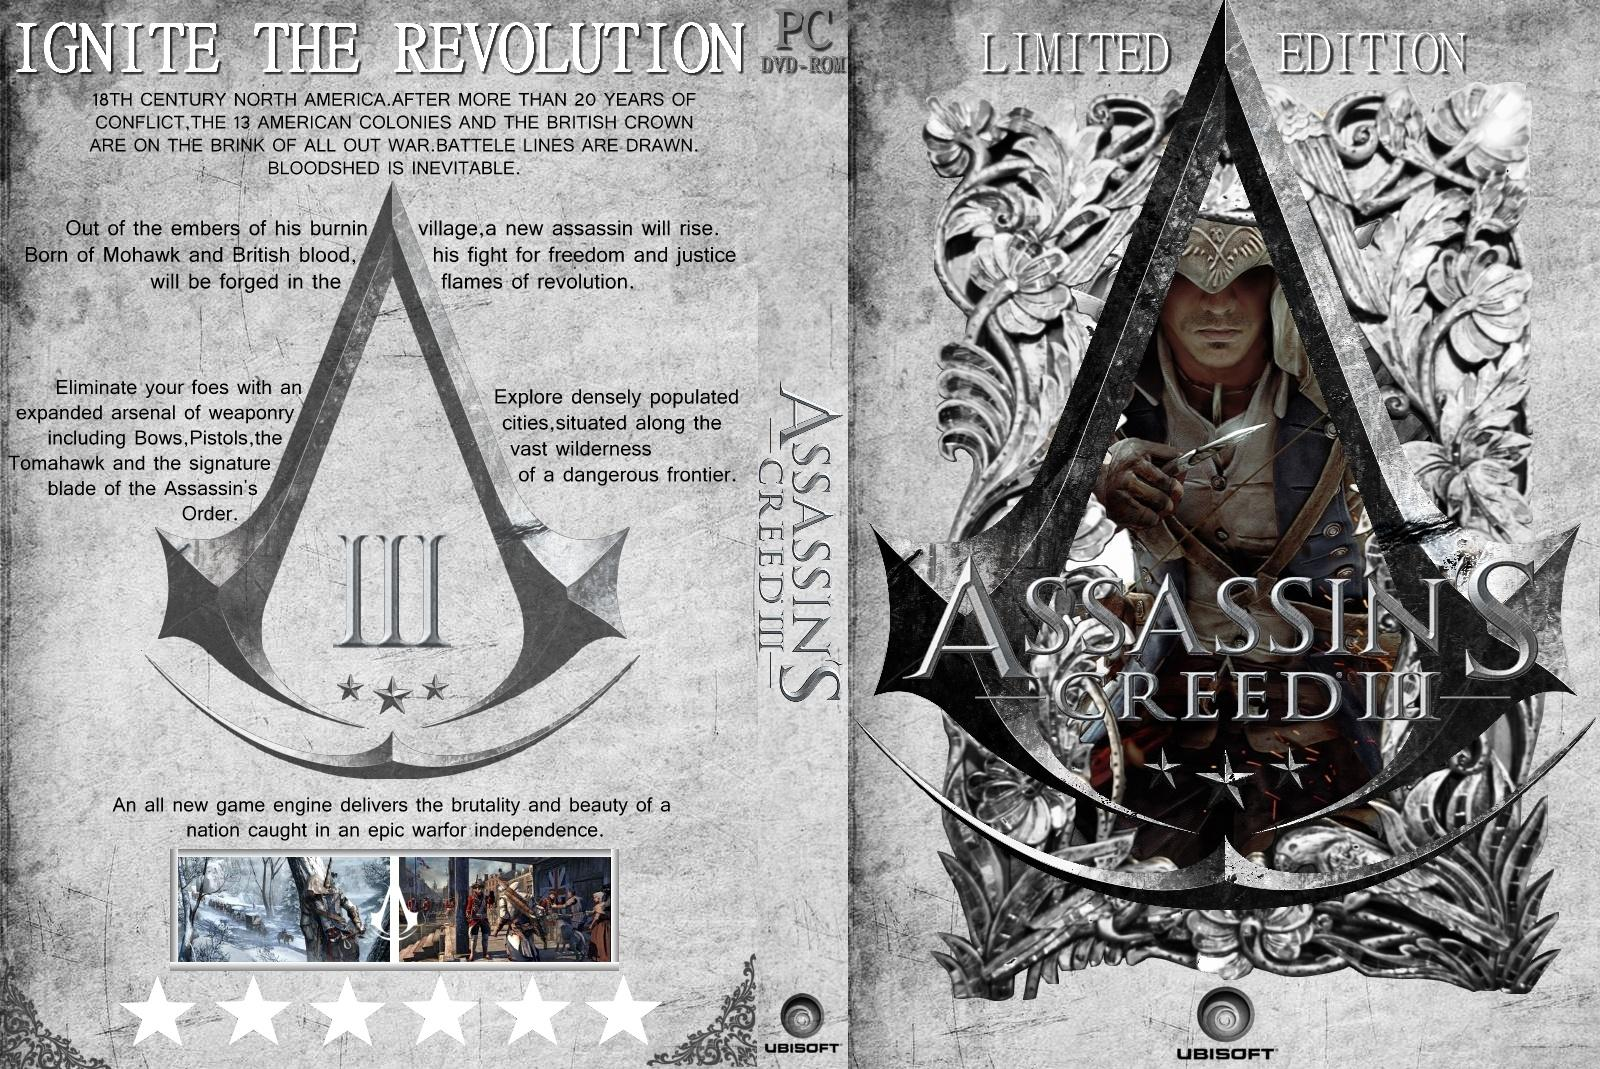 Capa Assassins Creed III Limited Edition PC